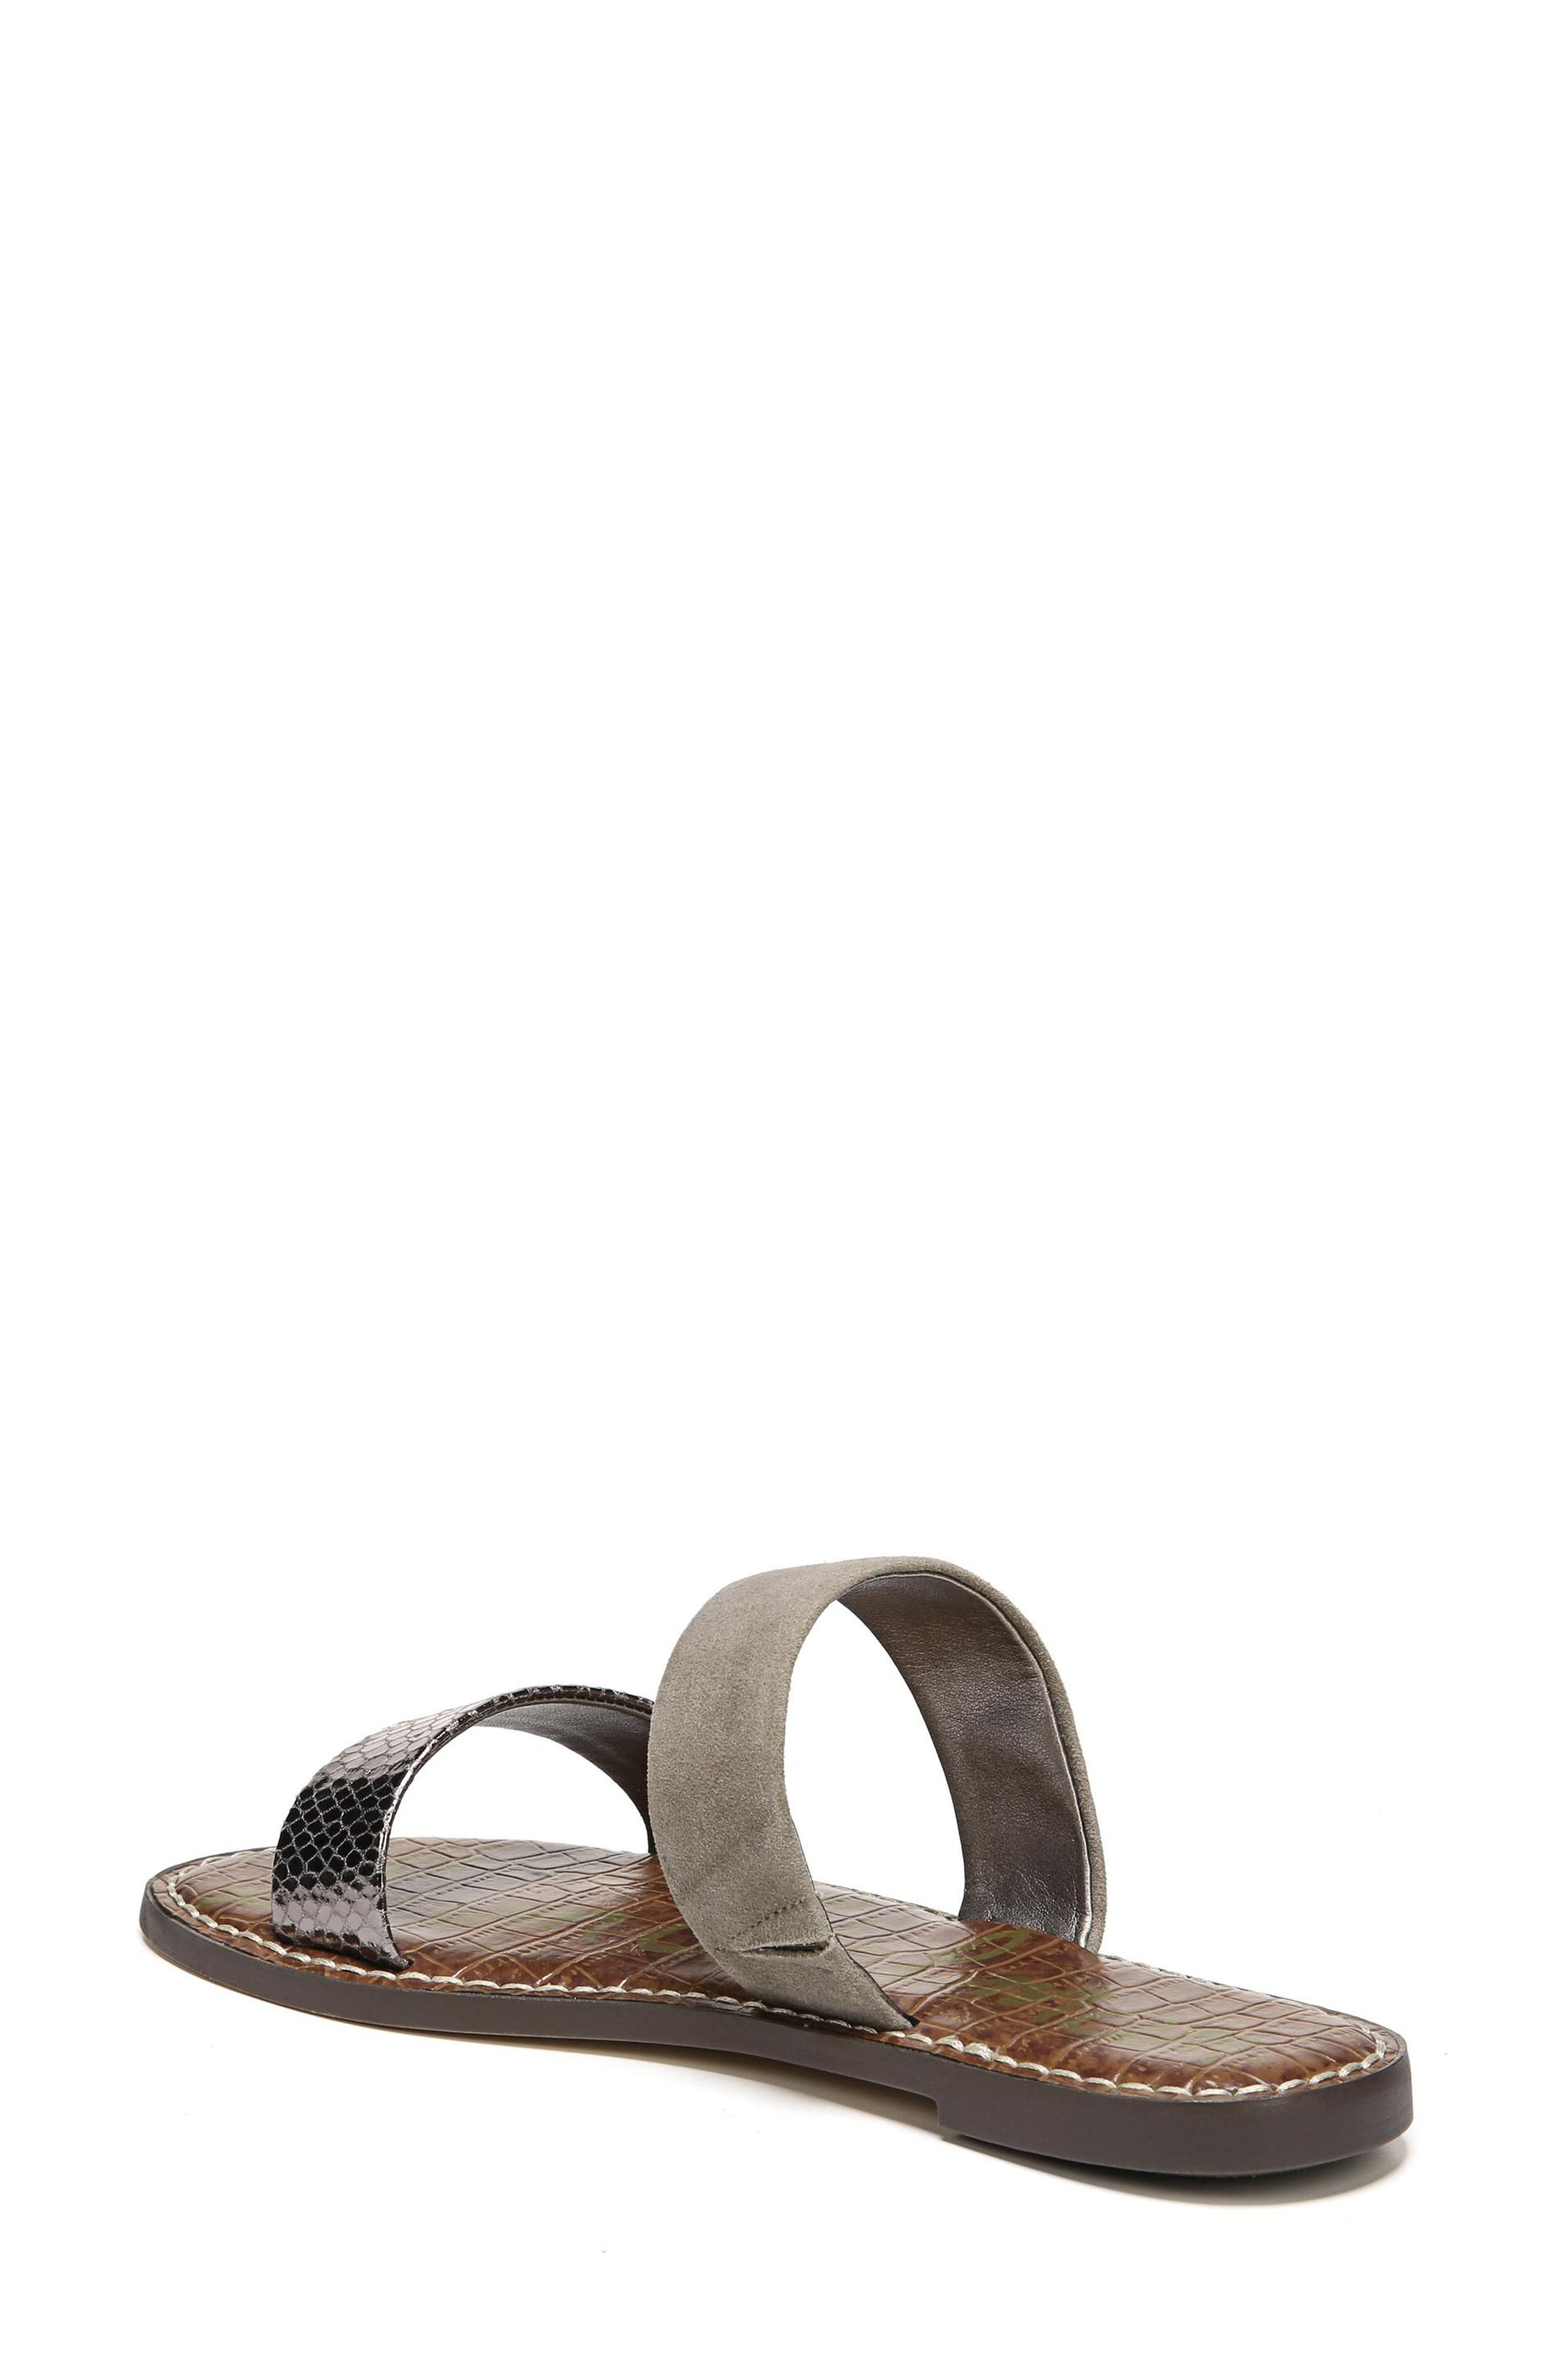 Gala Two Strap Slide Sandal,                             Alternate thumbnail 2, color,                             PEWTER/ PUTTY